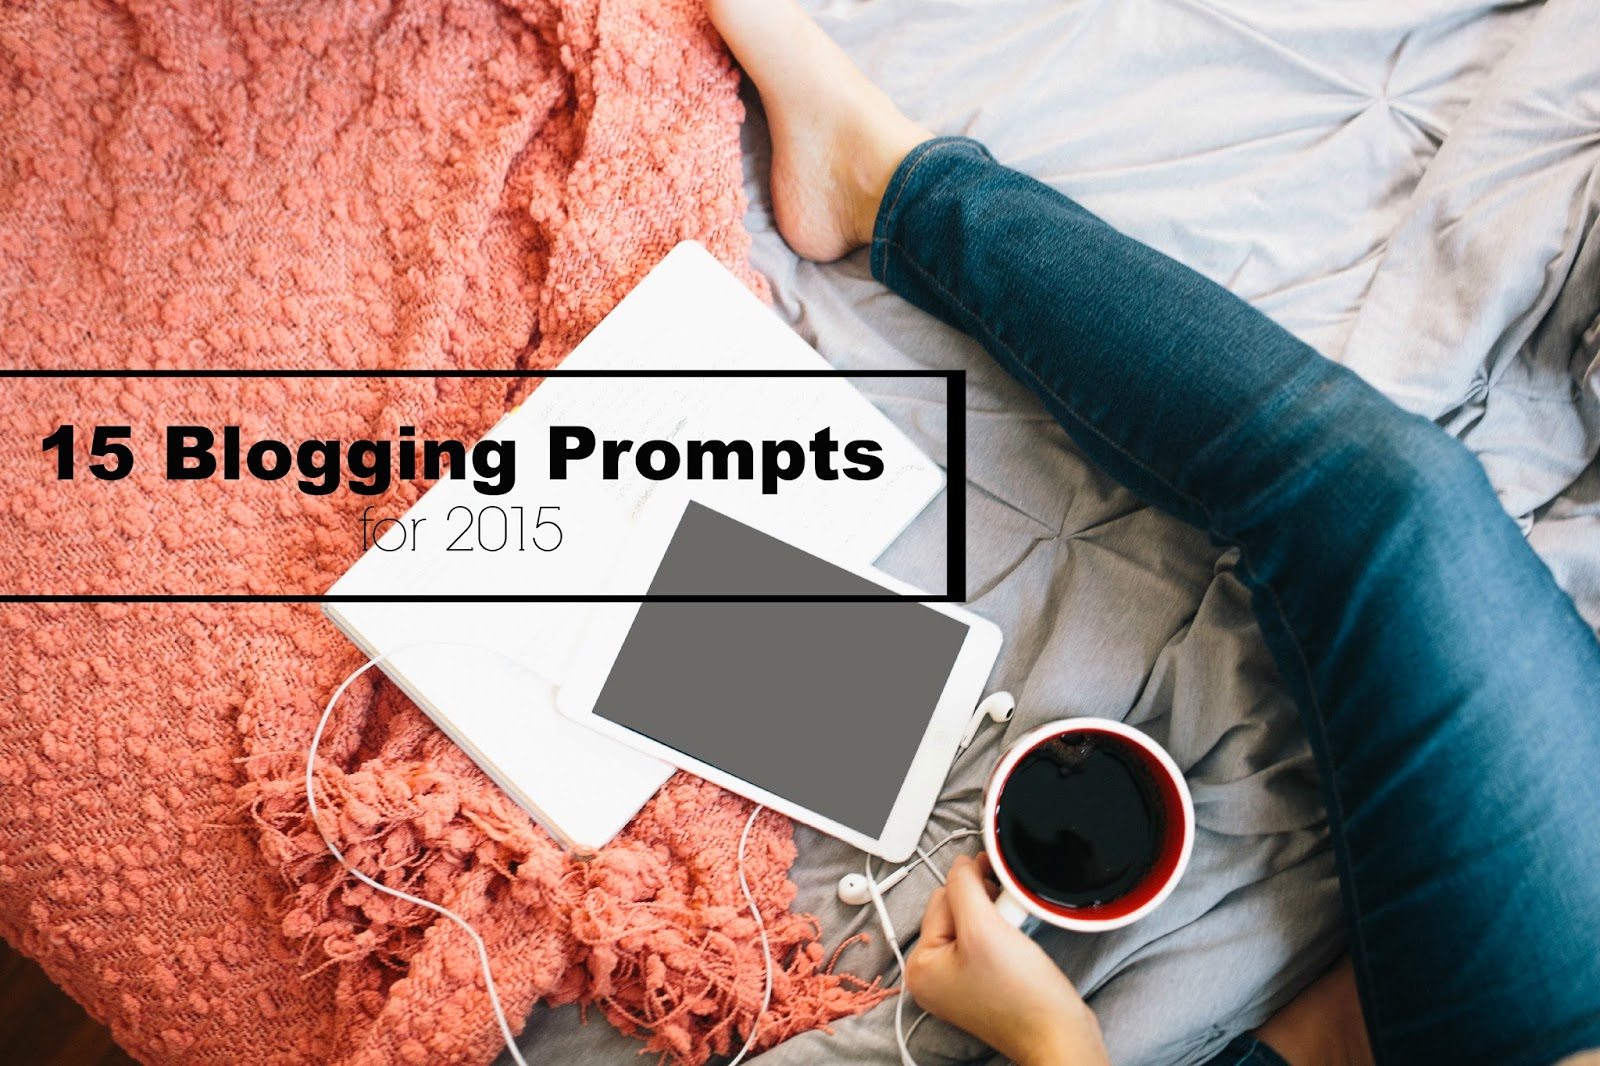 15 blogging prompts for 2015